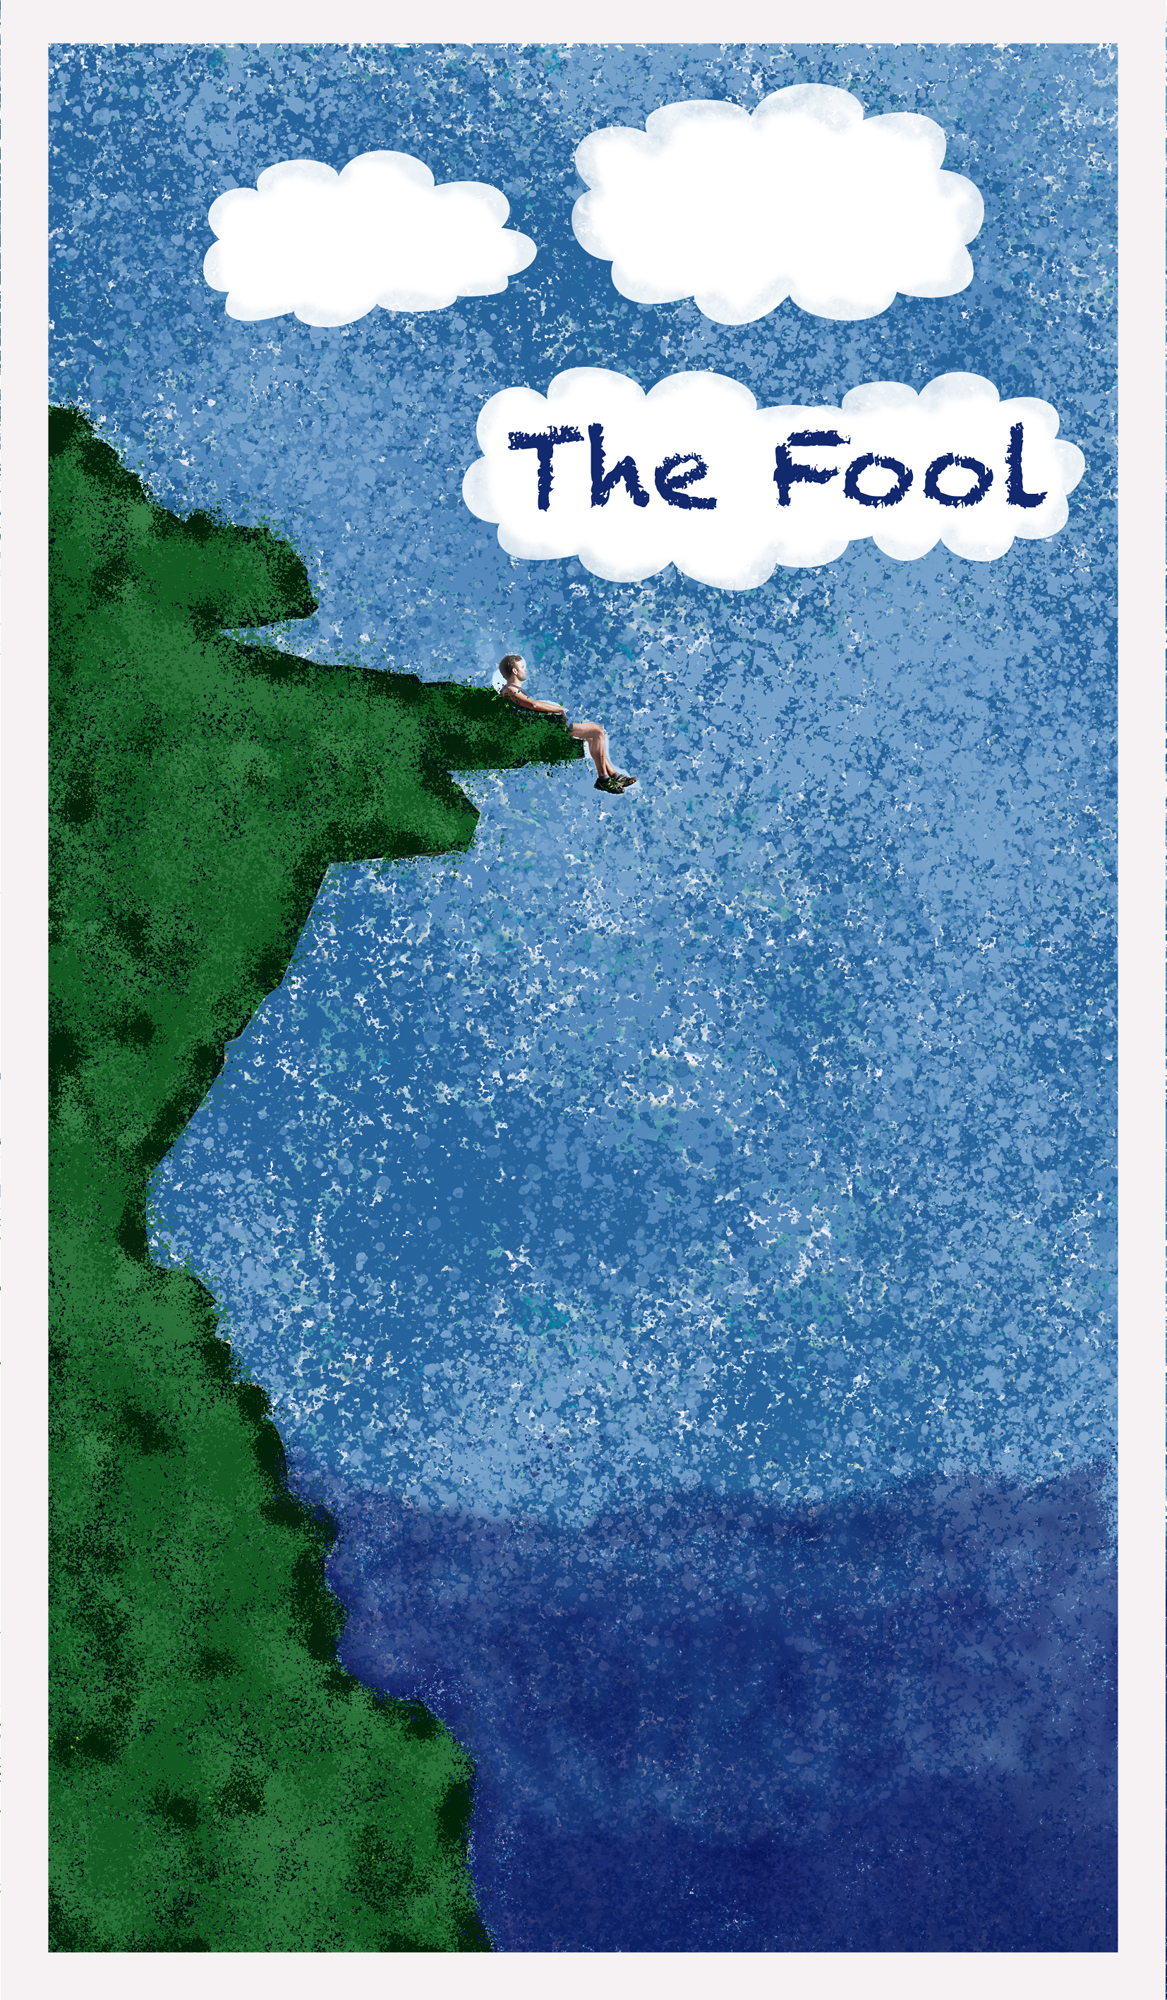 Small figure dangles feet off very large green ciff surrounded by sky and water with the words 'the fool' in a cloud